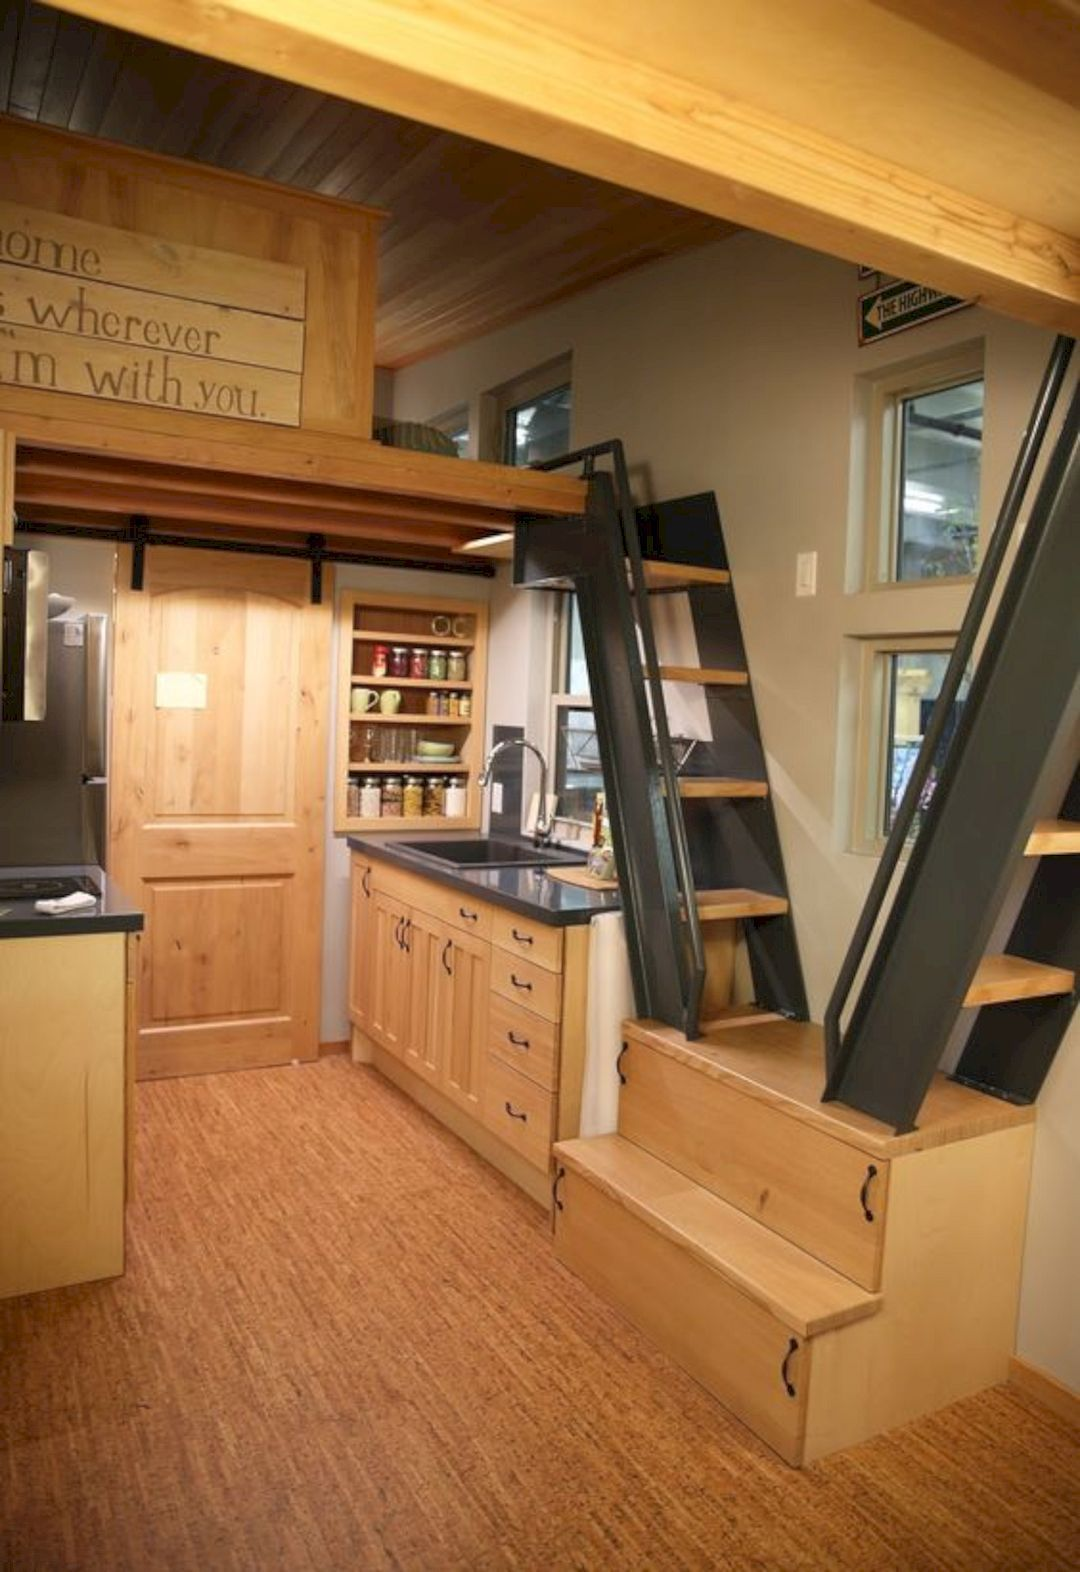 16 Small Home Furniture Ideas Futuristic Architecture Space Saving Stairs Arch 16 Smal In 2020 Tiny House Interior Tiny House Design Tiny House Furniture